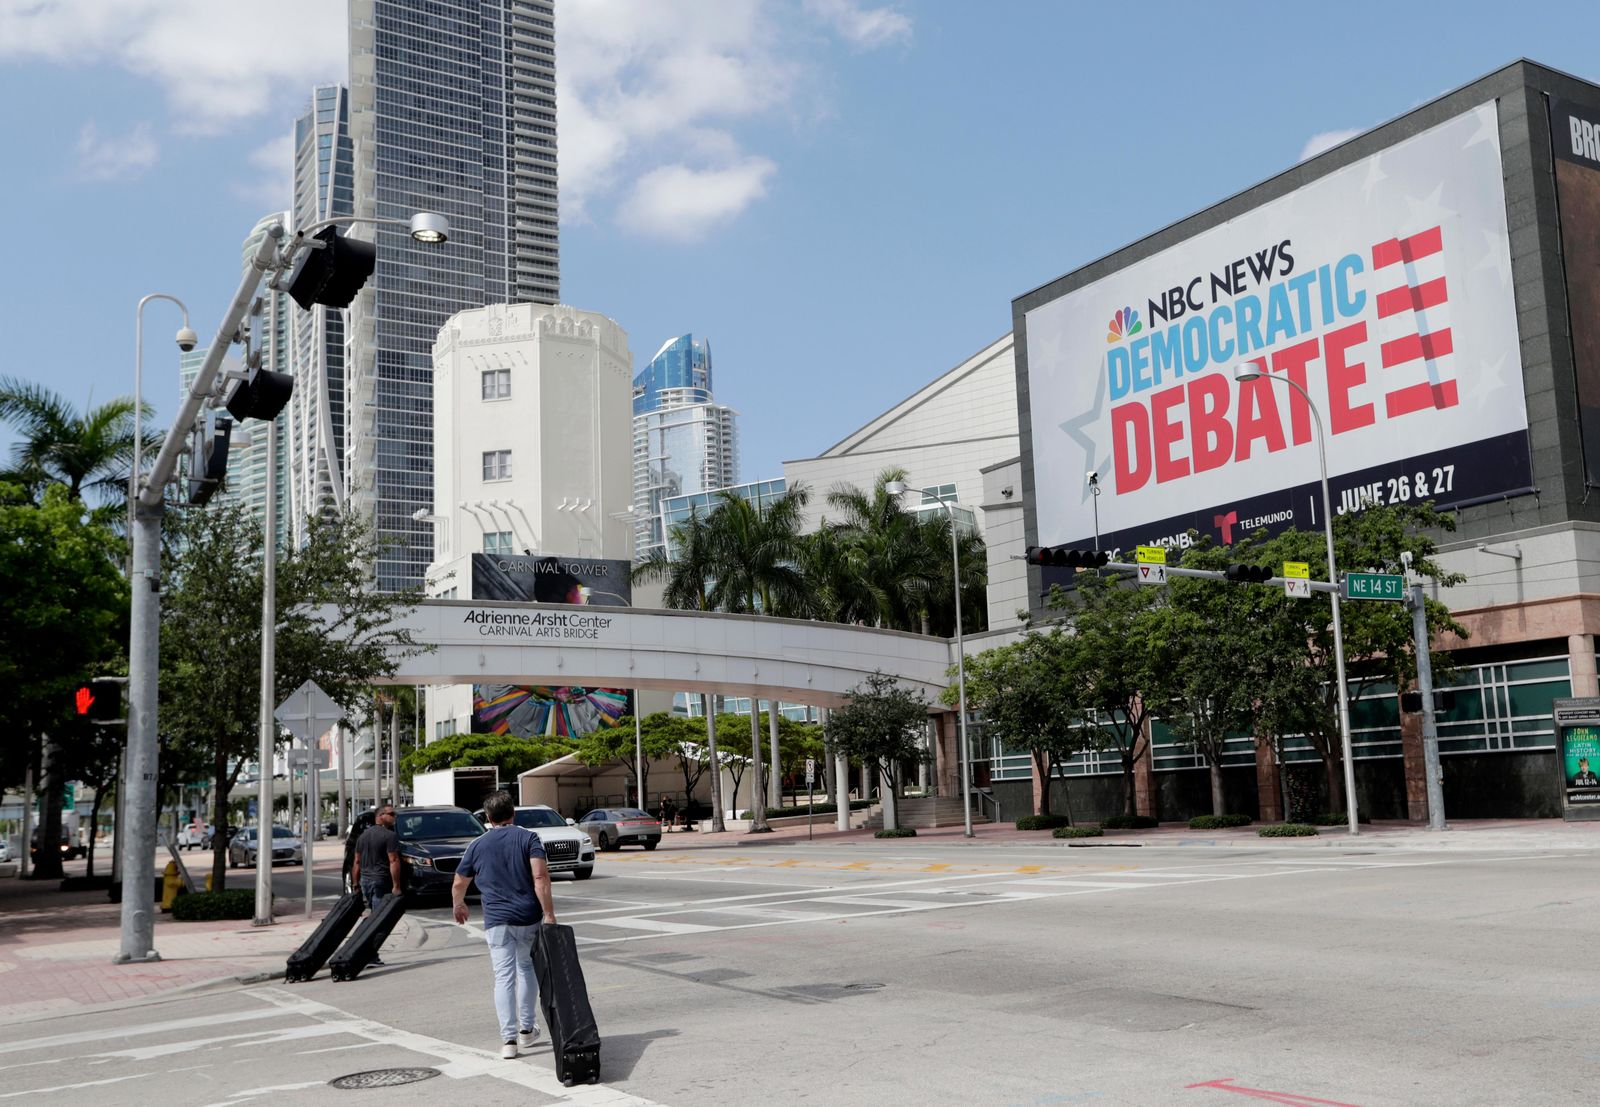 In this June 24, 2019, photo, a billboard advertises the Democratic Presidential Debates across from the Knight Concert Hall at the Adrienne Arsht Center for the Performing Arts of Miami-Dade County, in Miami.{ } (AP Photo/Lynne Sladky)